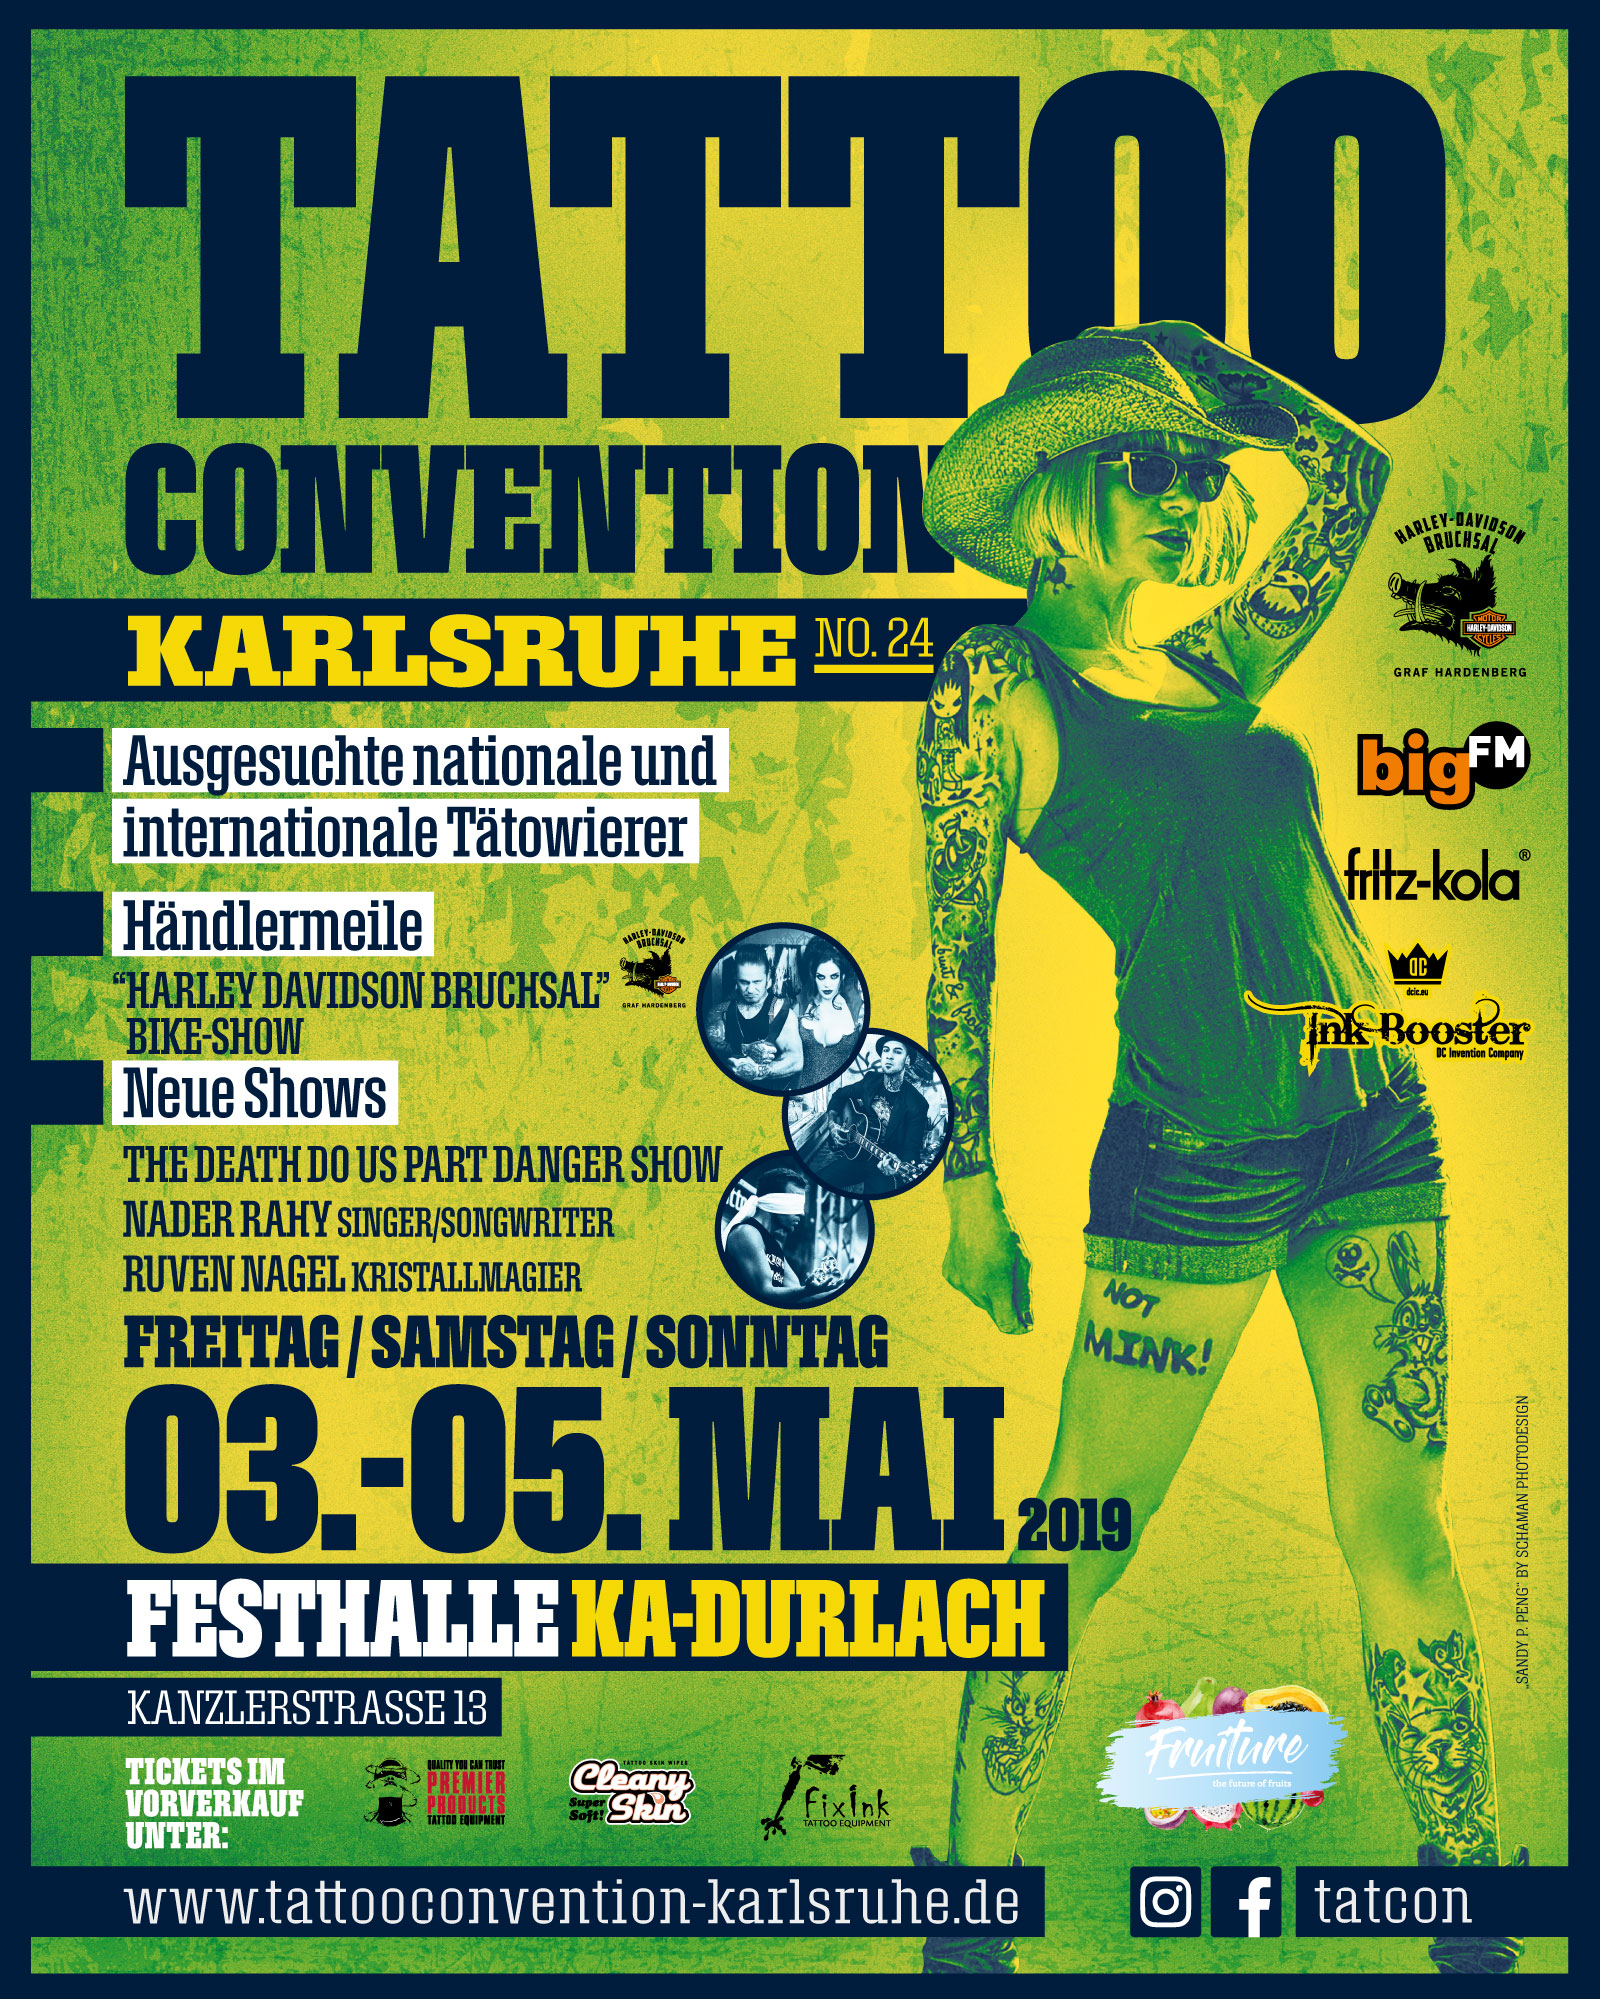 Tattooconvention Karlsruhe 2019 Flyer